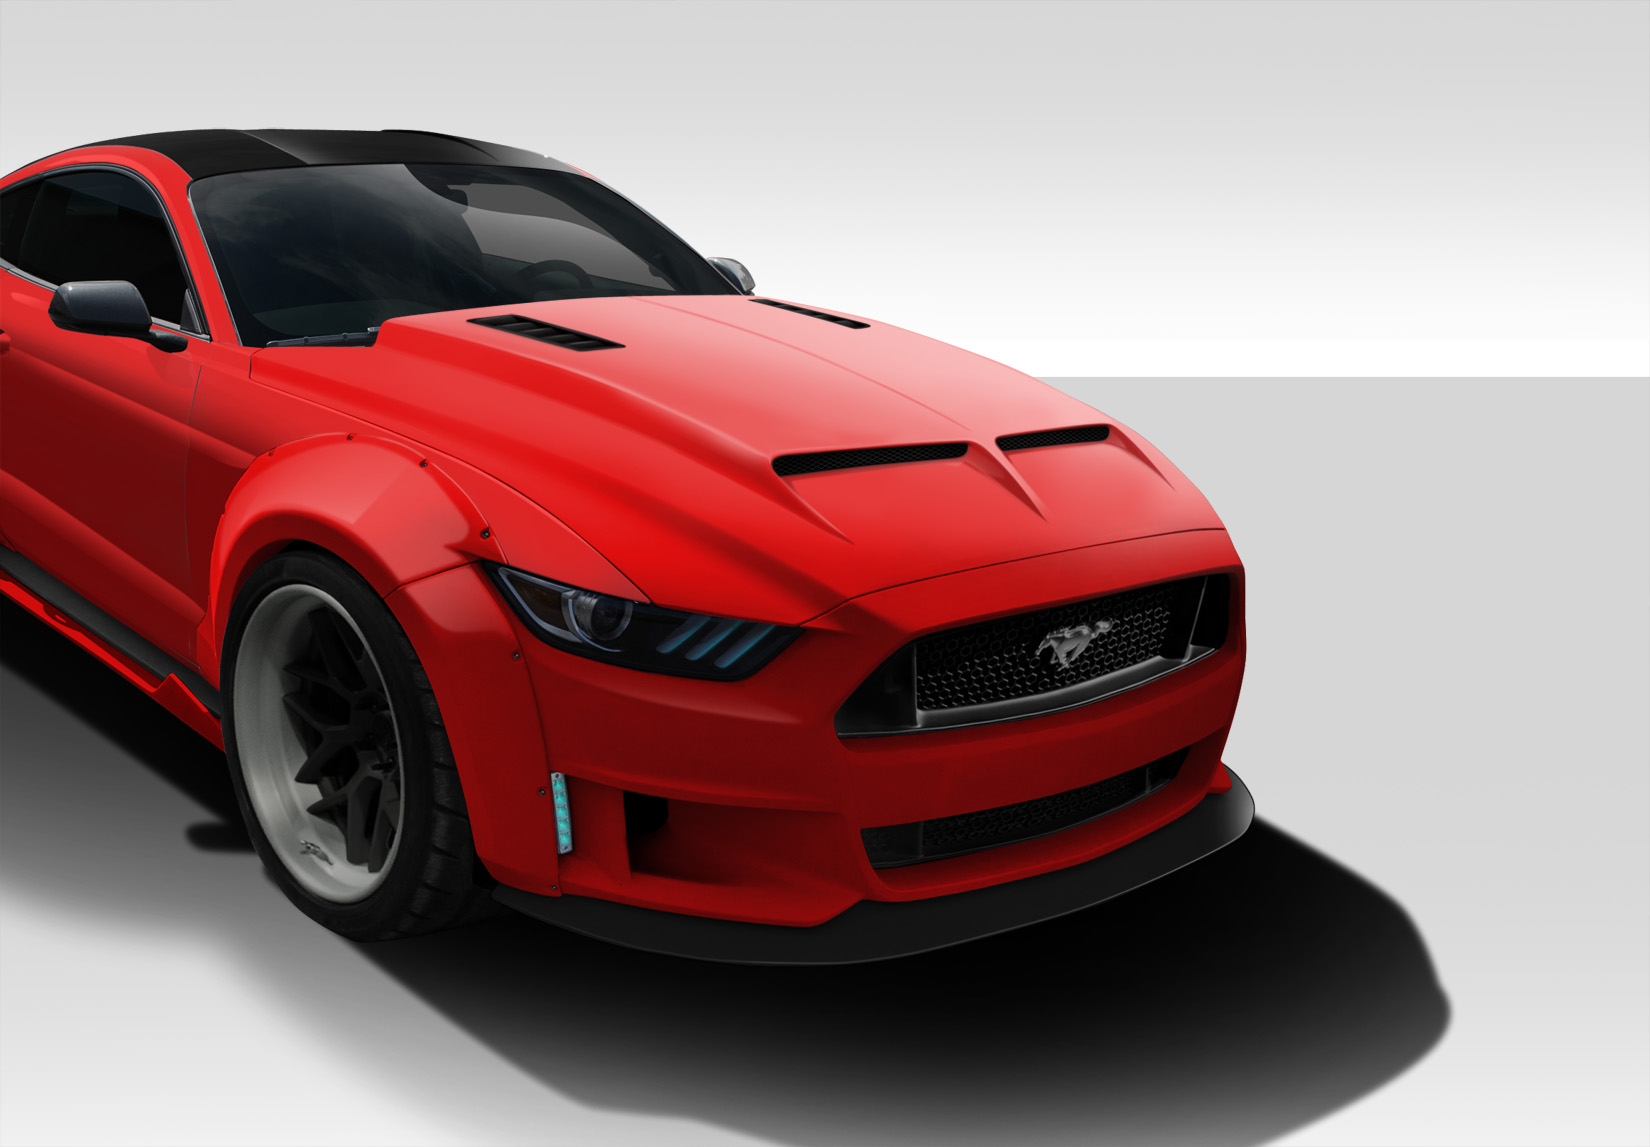 fiberglass hood body kit for 2016 ford mustang 2015. Black Bedroom Furniture Sets. Home Design Ideas